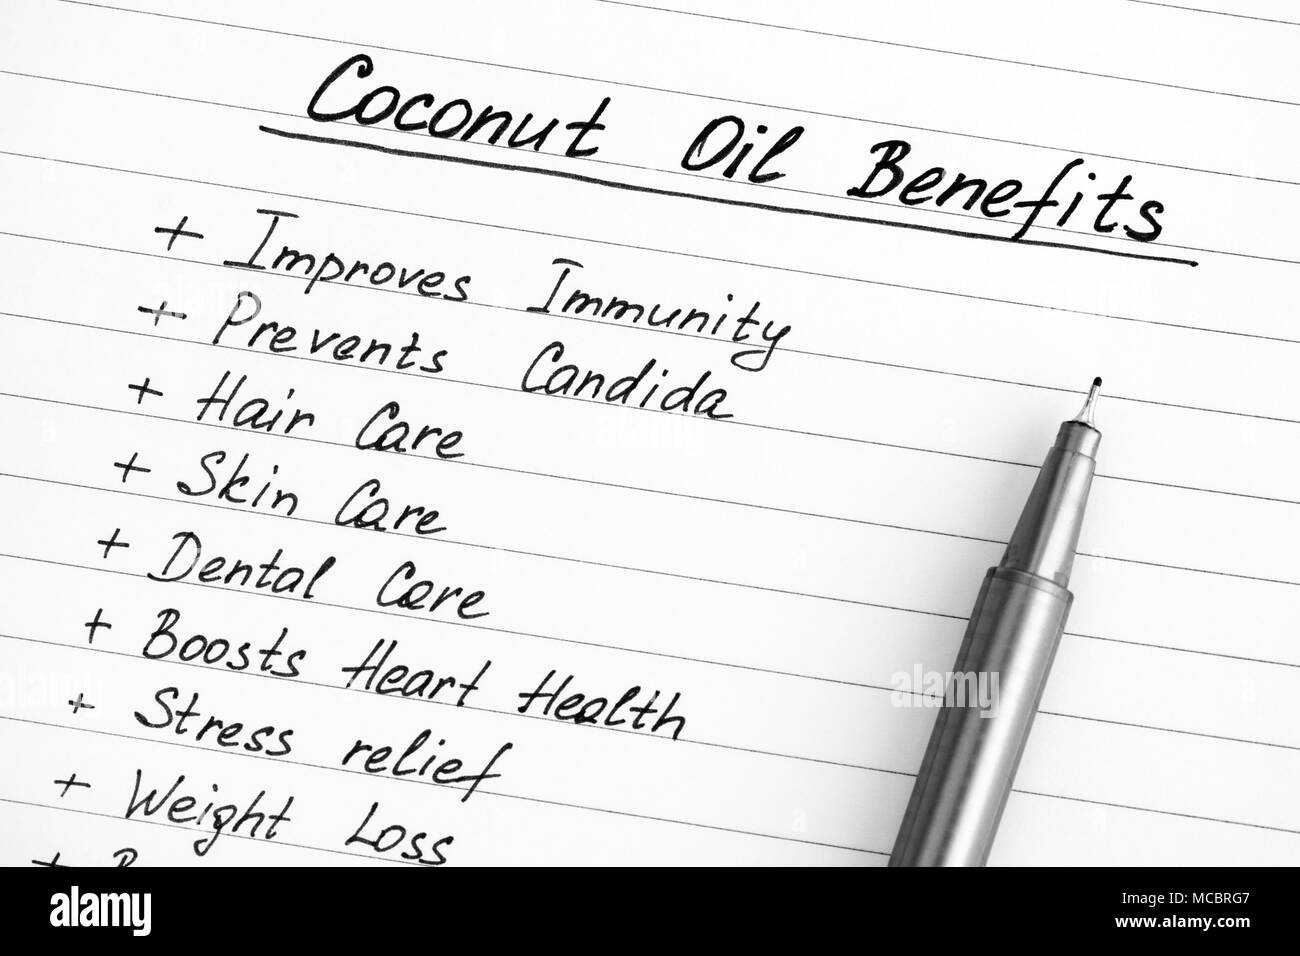 List of Coconut Oil Benefits with pen. Close-up. - Stock Image